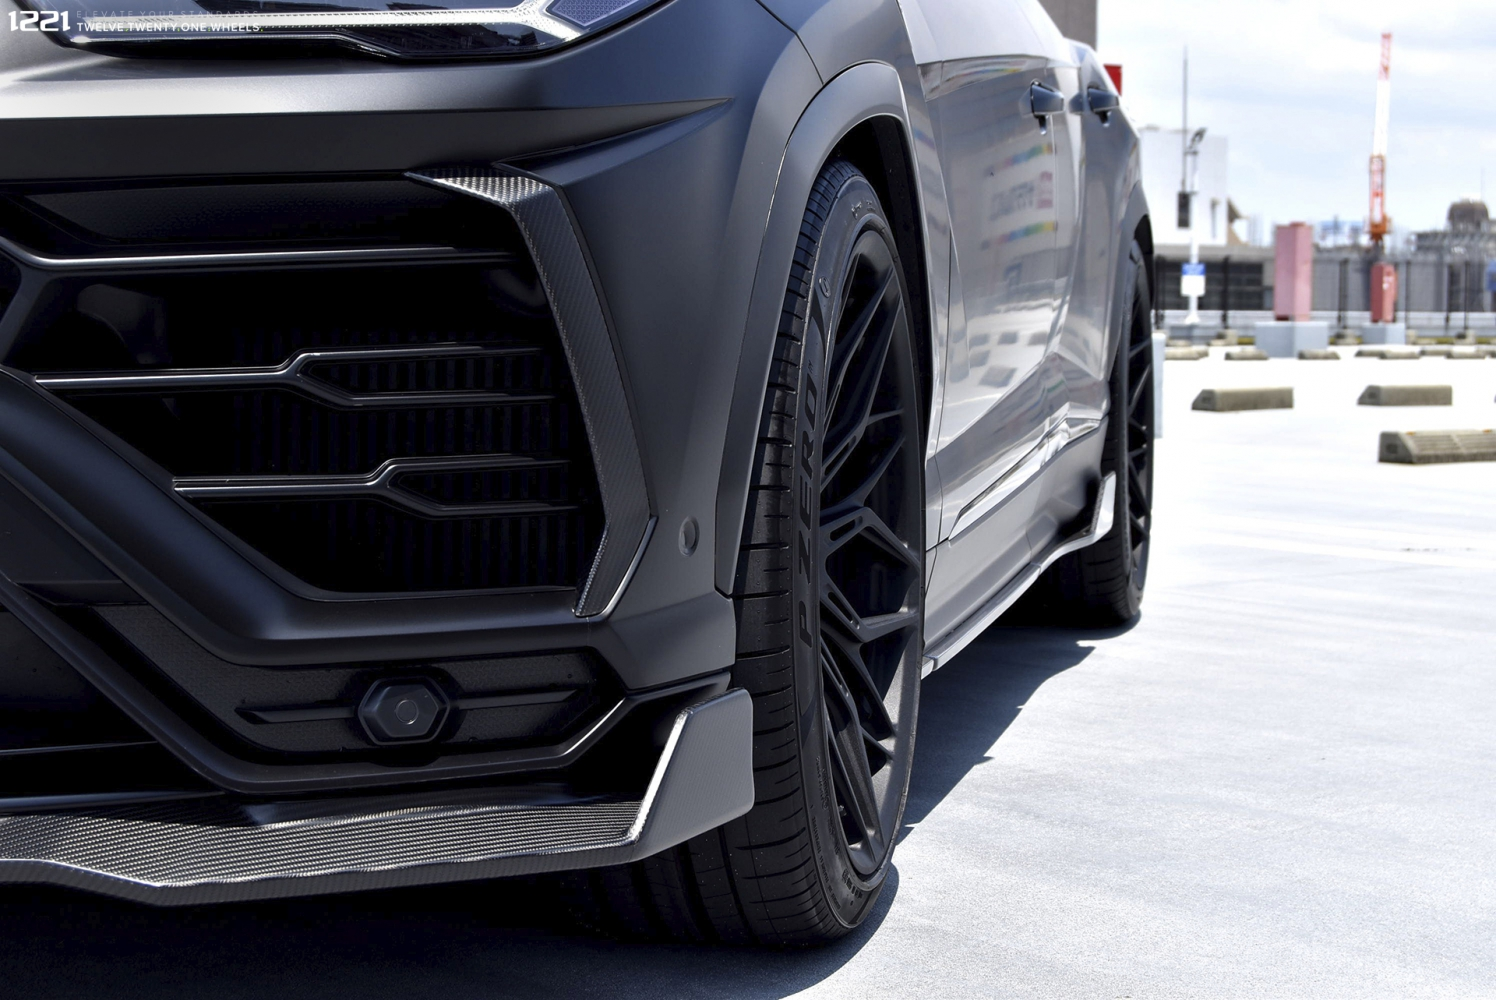 Lamborghini Urus 23 inch Forged Wheels